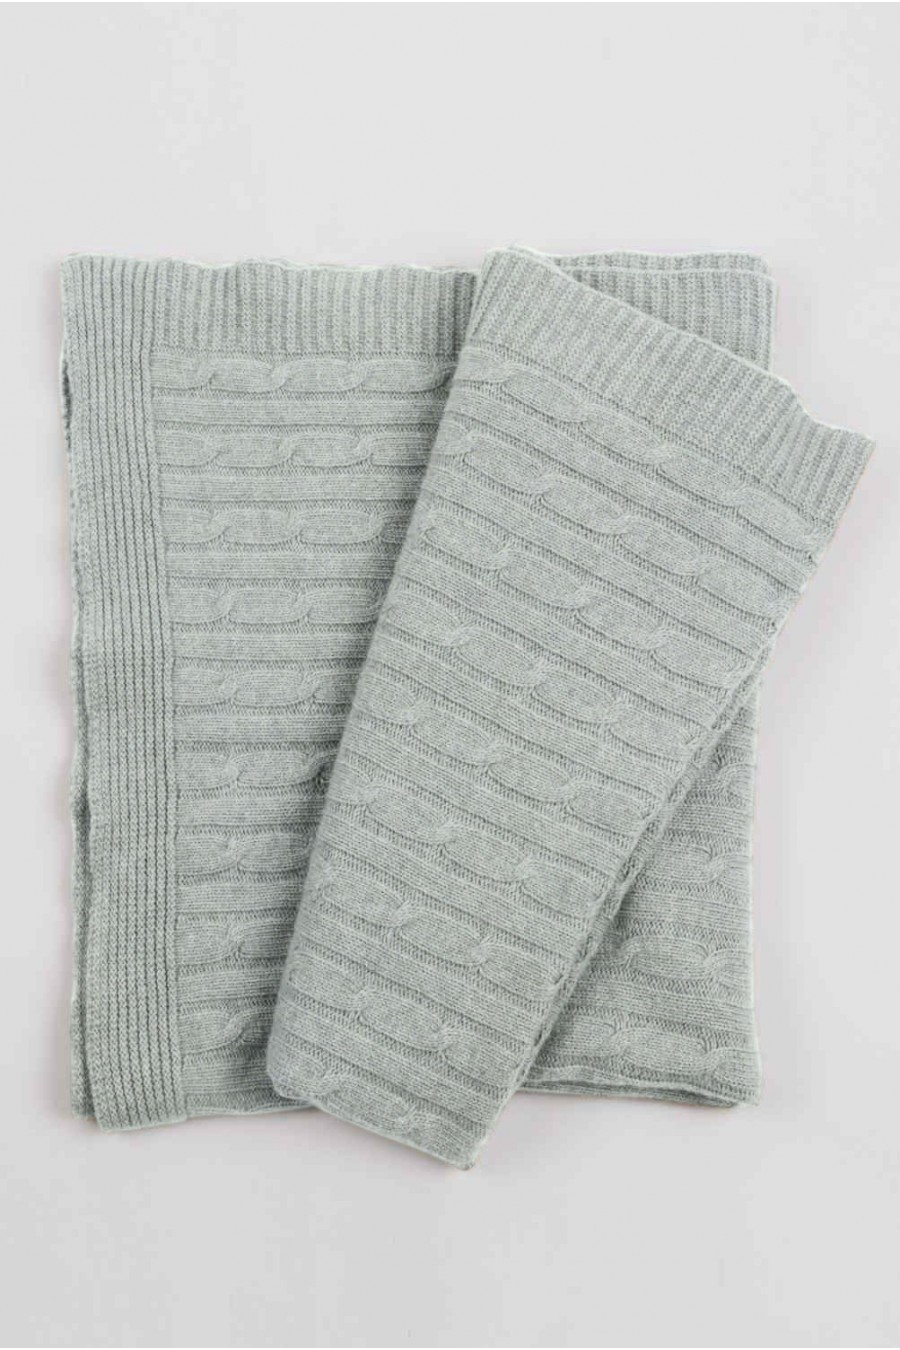 Image of: Luxury Pure Cashmere Cable Knit Blanket Throw Italy In Cashmere Uk